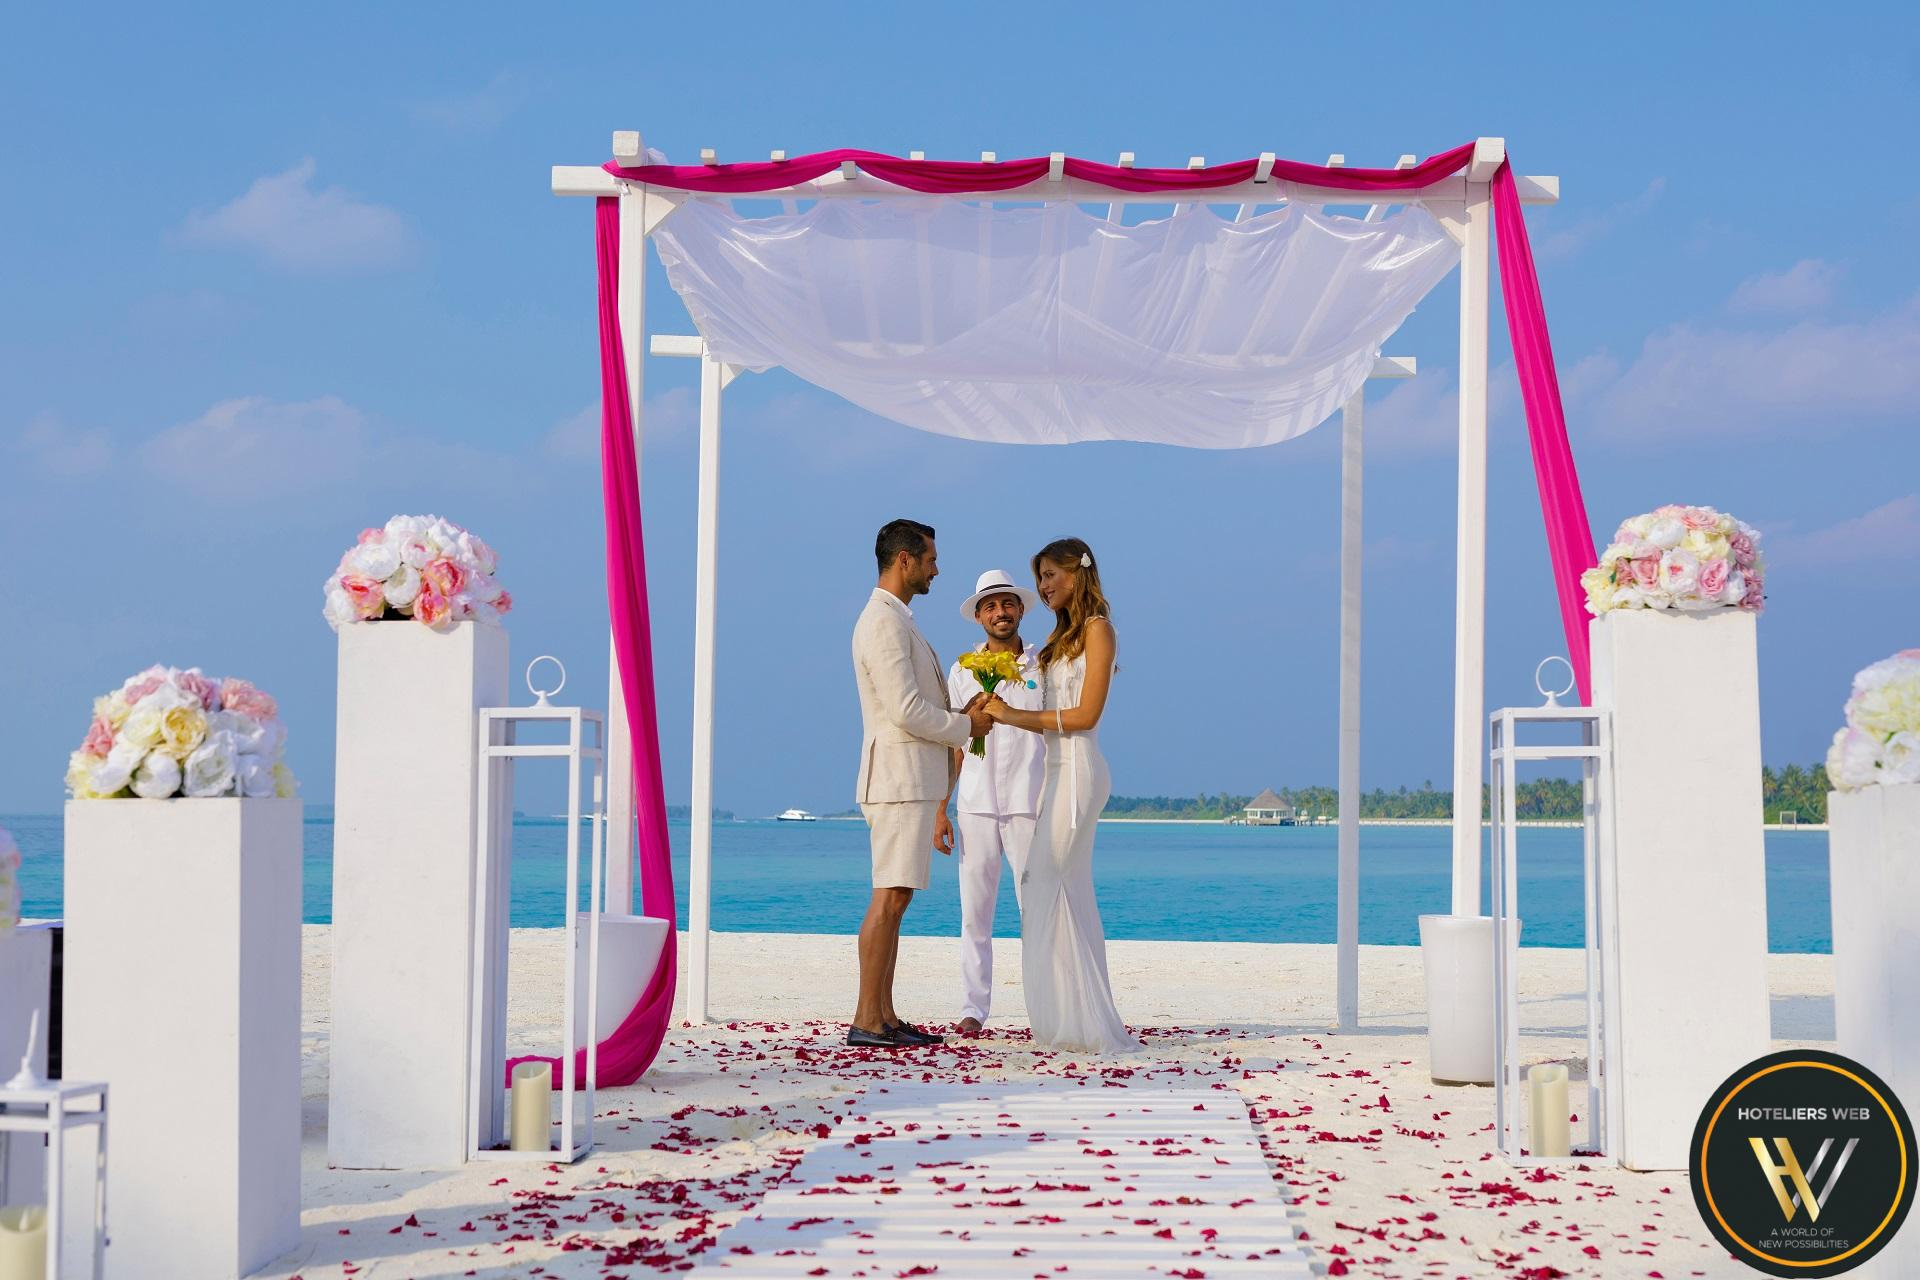 YOUR DREAM DESTI(NATION) WEDDING CELEBRATIONS ARE A REALITY!